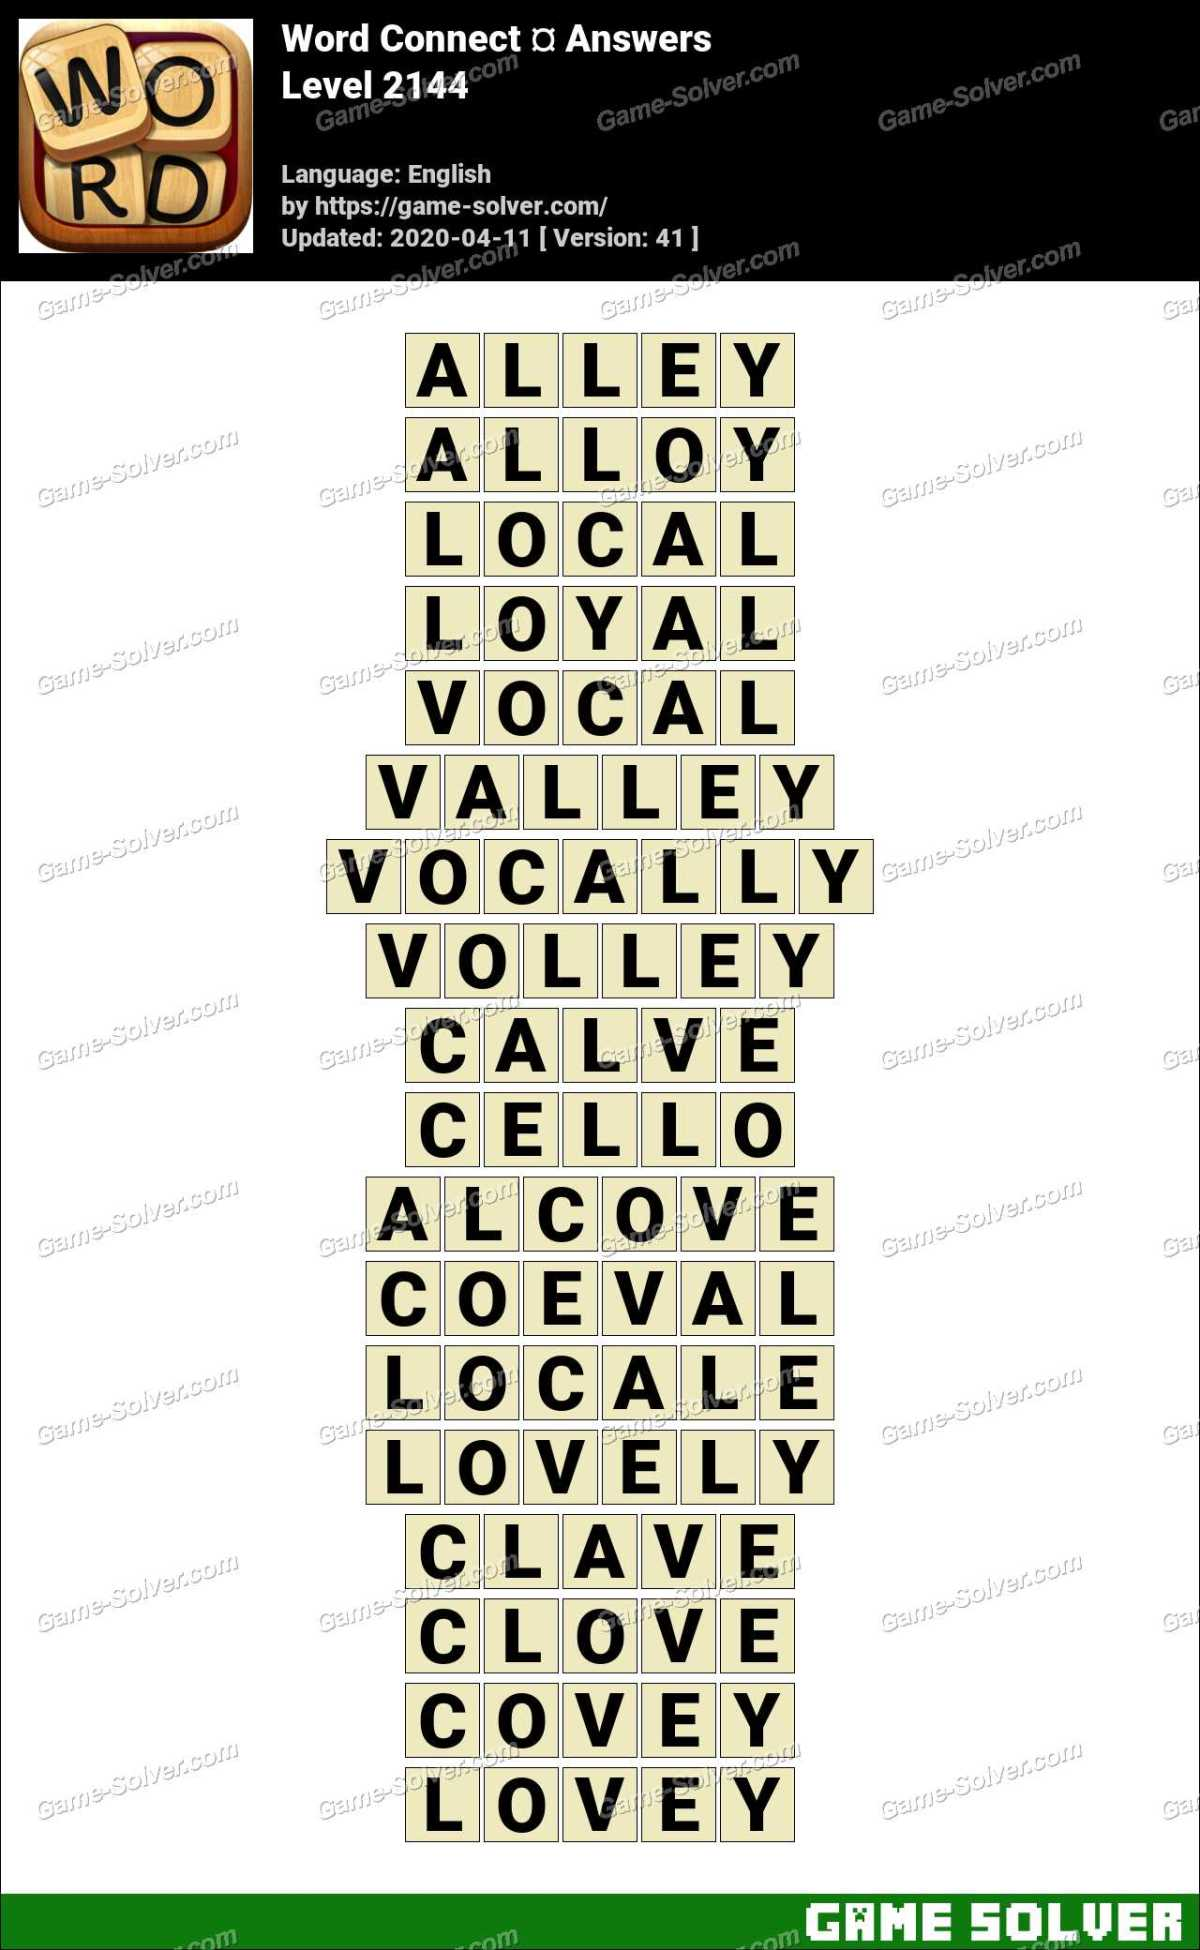 Word Connect Level 2144 Answers